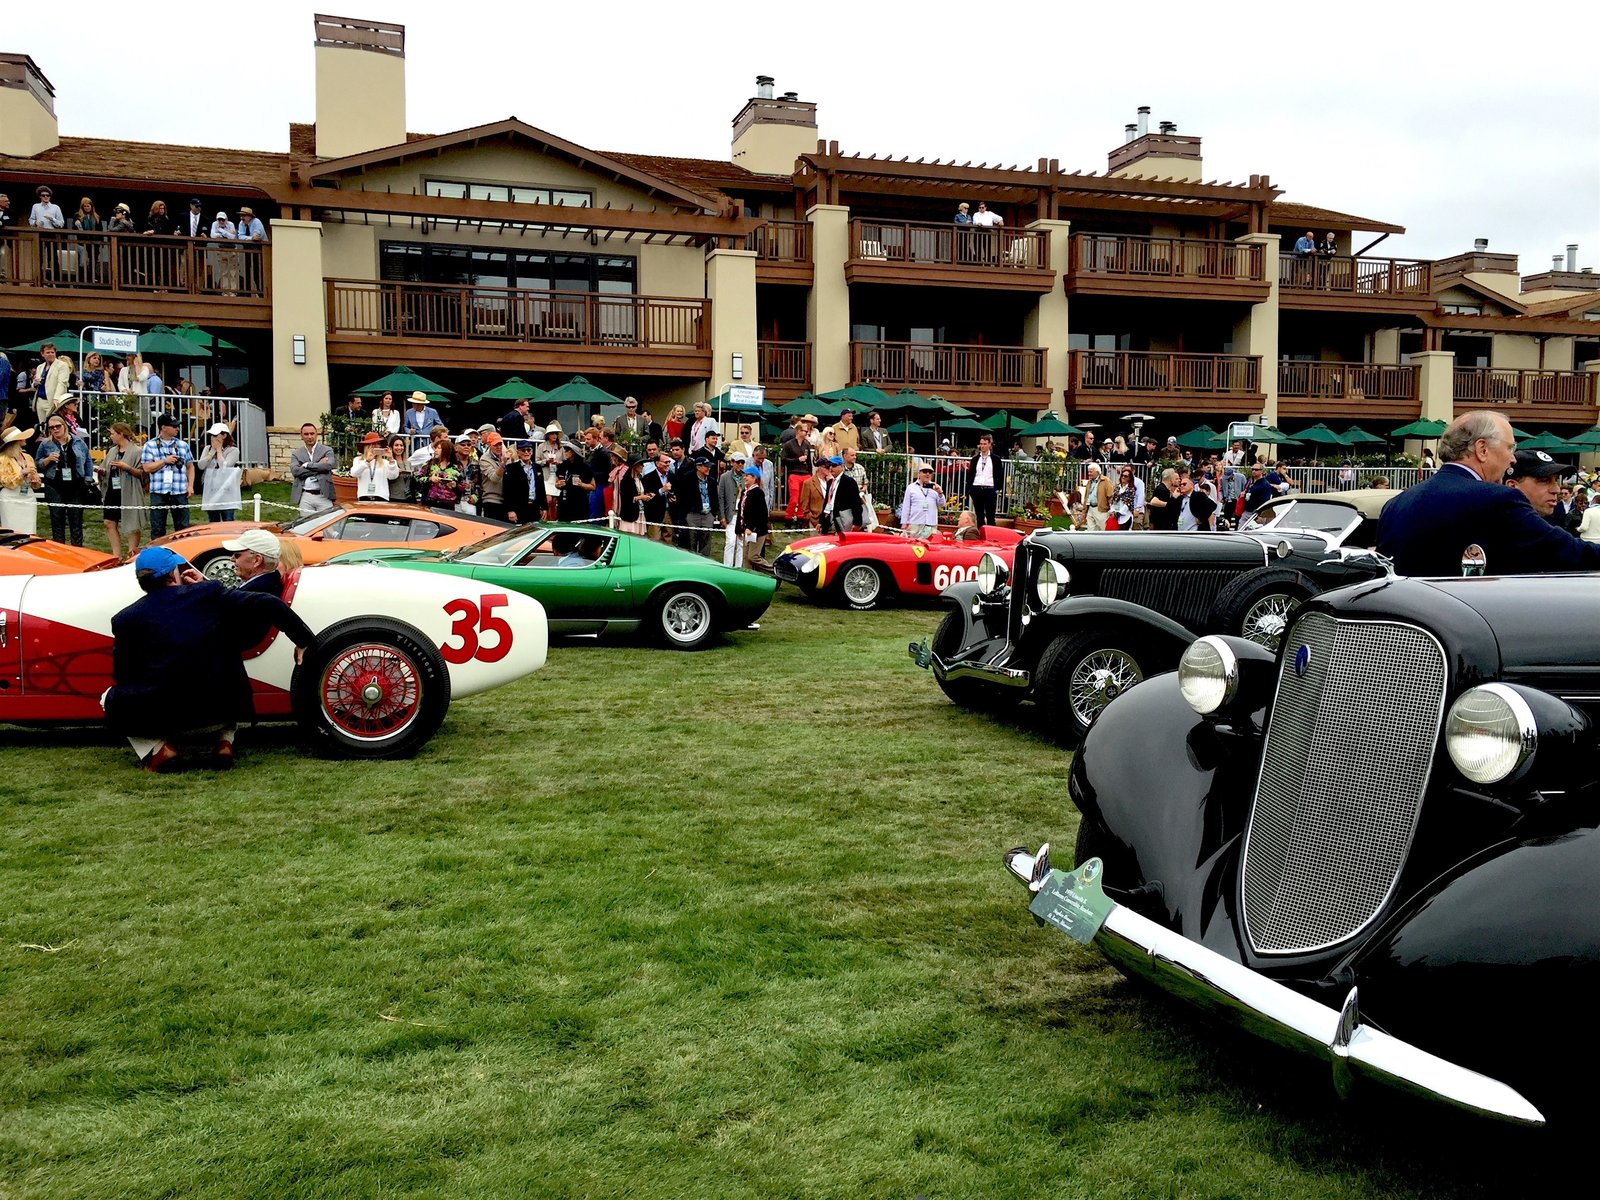 Photo 1 of 10 in A Day at the Pebble Beach Concours d'Elegance Car Show